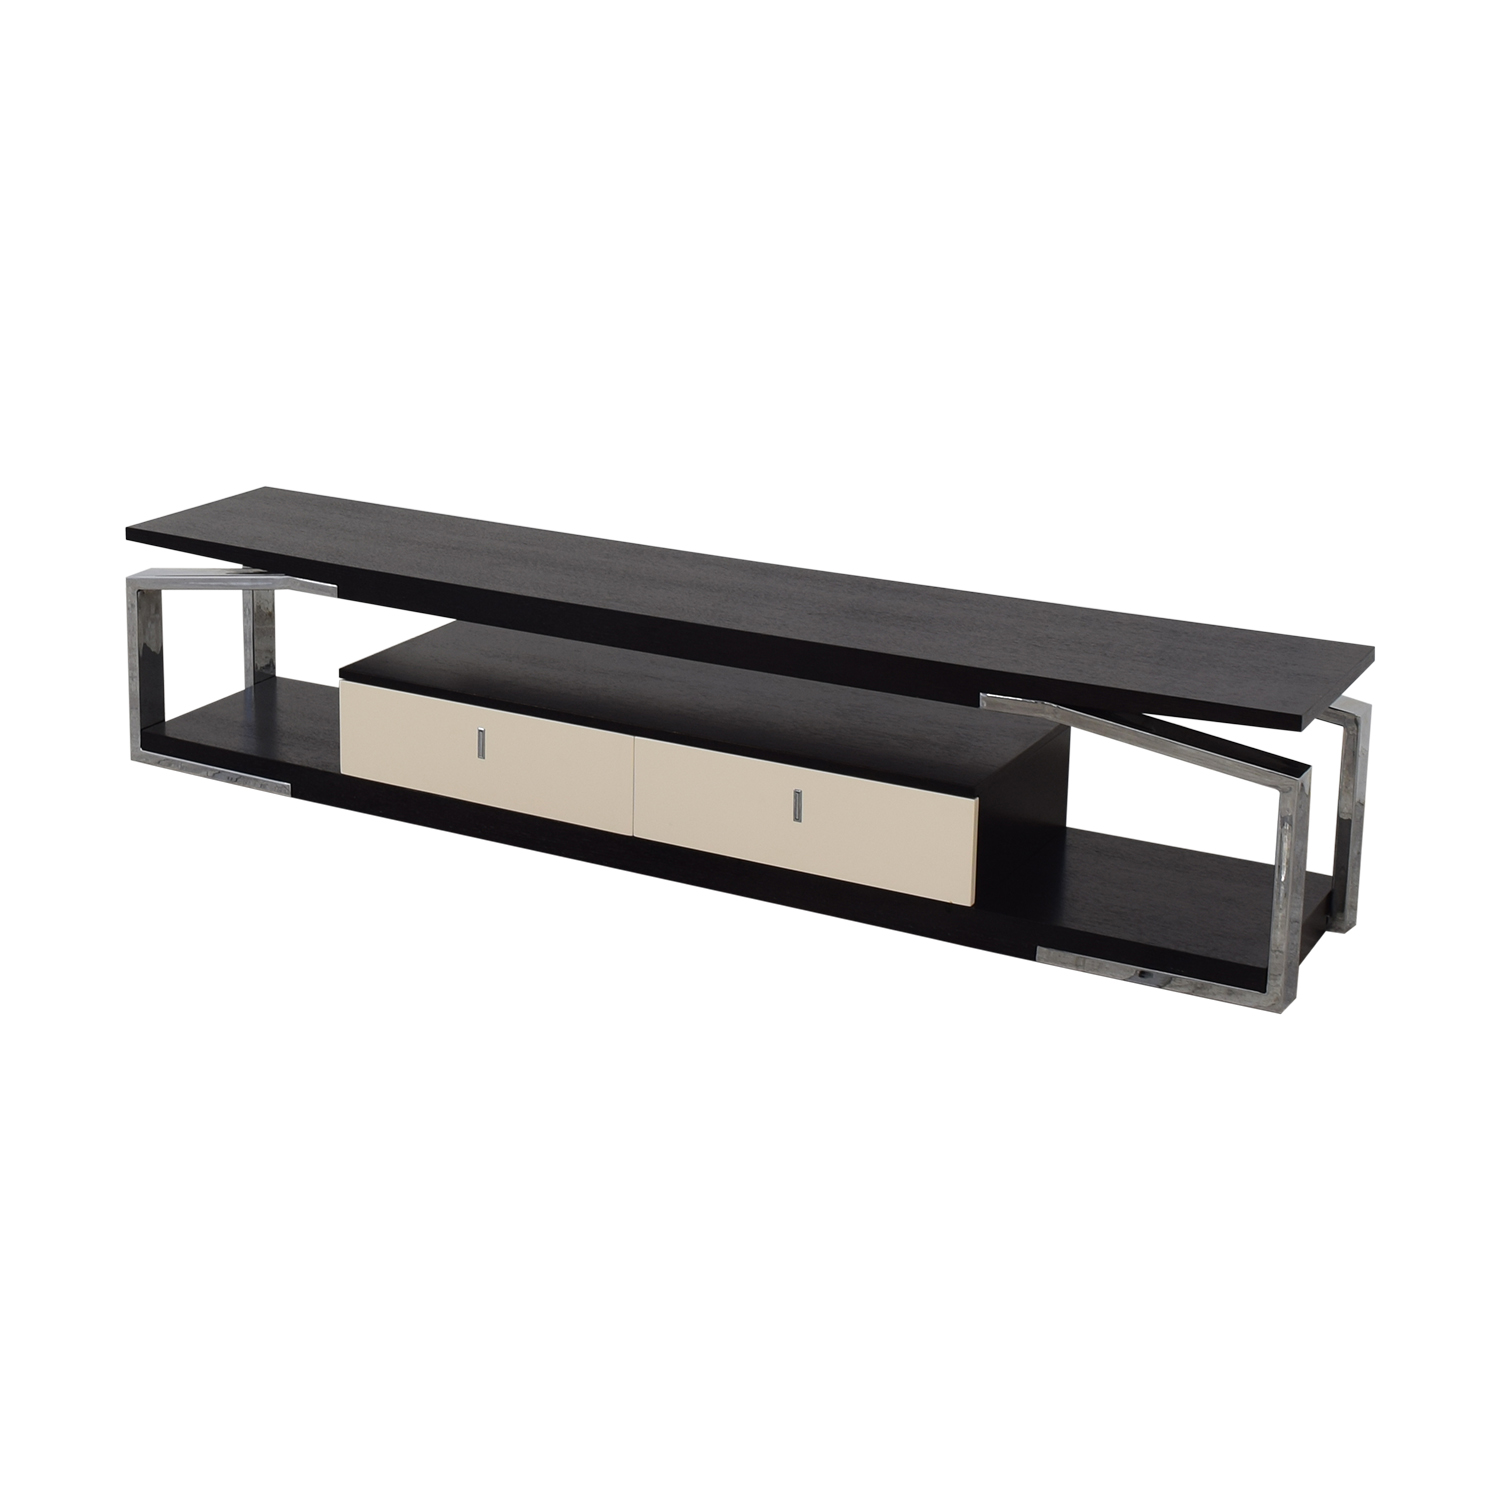 Modani Modani TV Stand with Drawers for sale